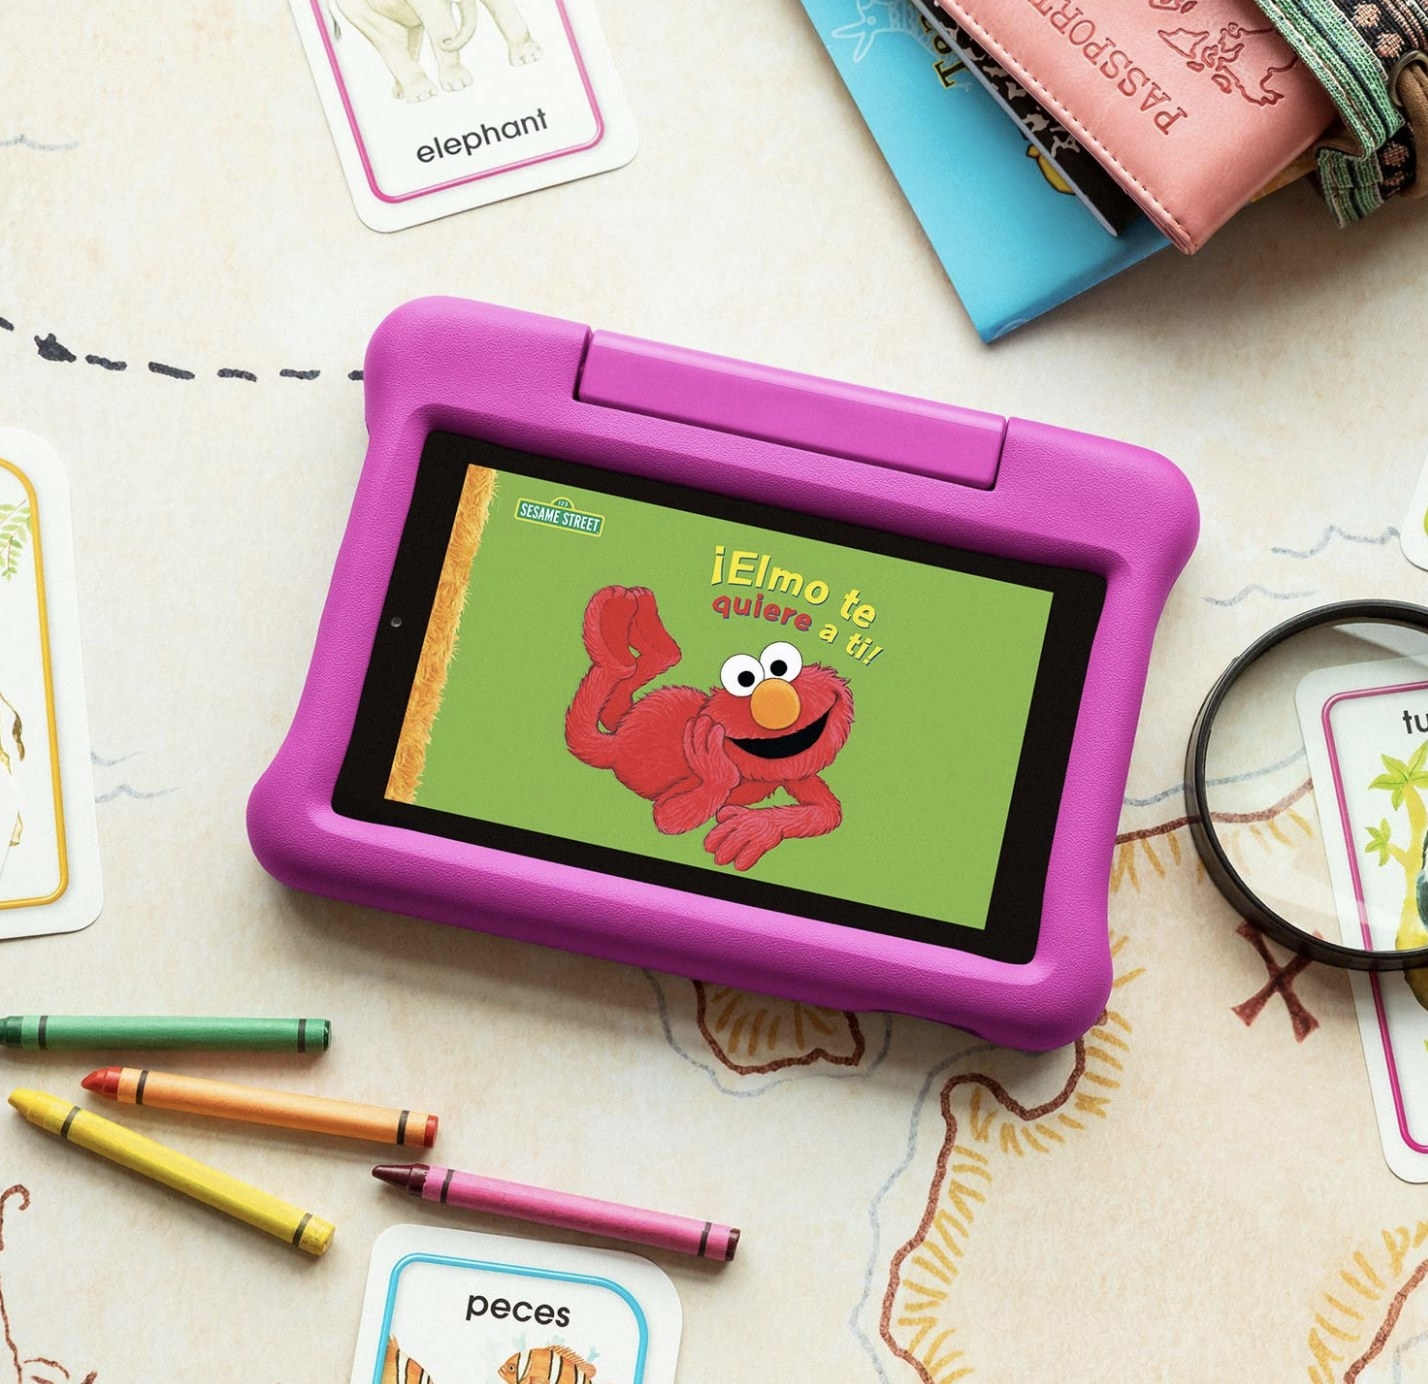 a pink amazon kindle tablet